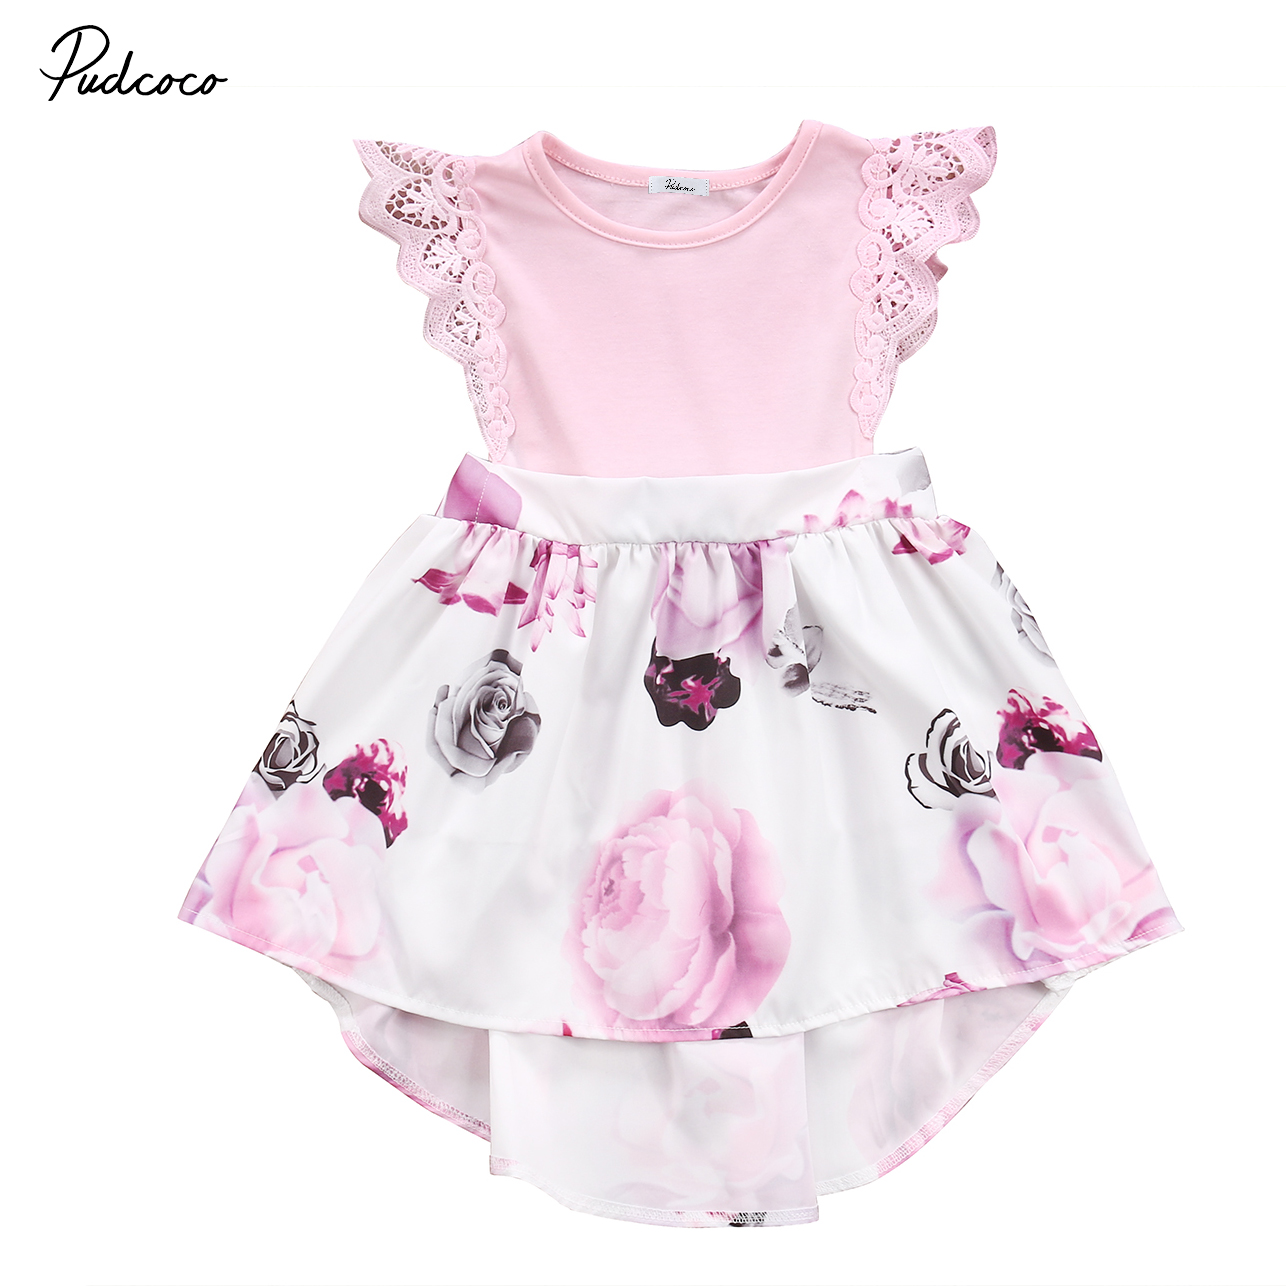 Little Sister Toddler Kids Girls Floral Romper Dress Clothes Sundress Newborn Baby Romper Outfits